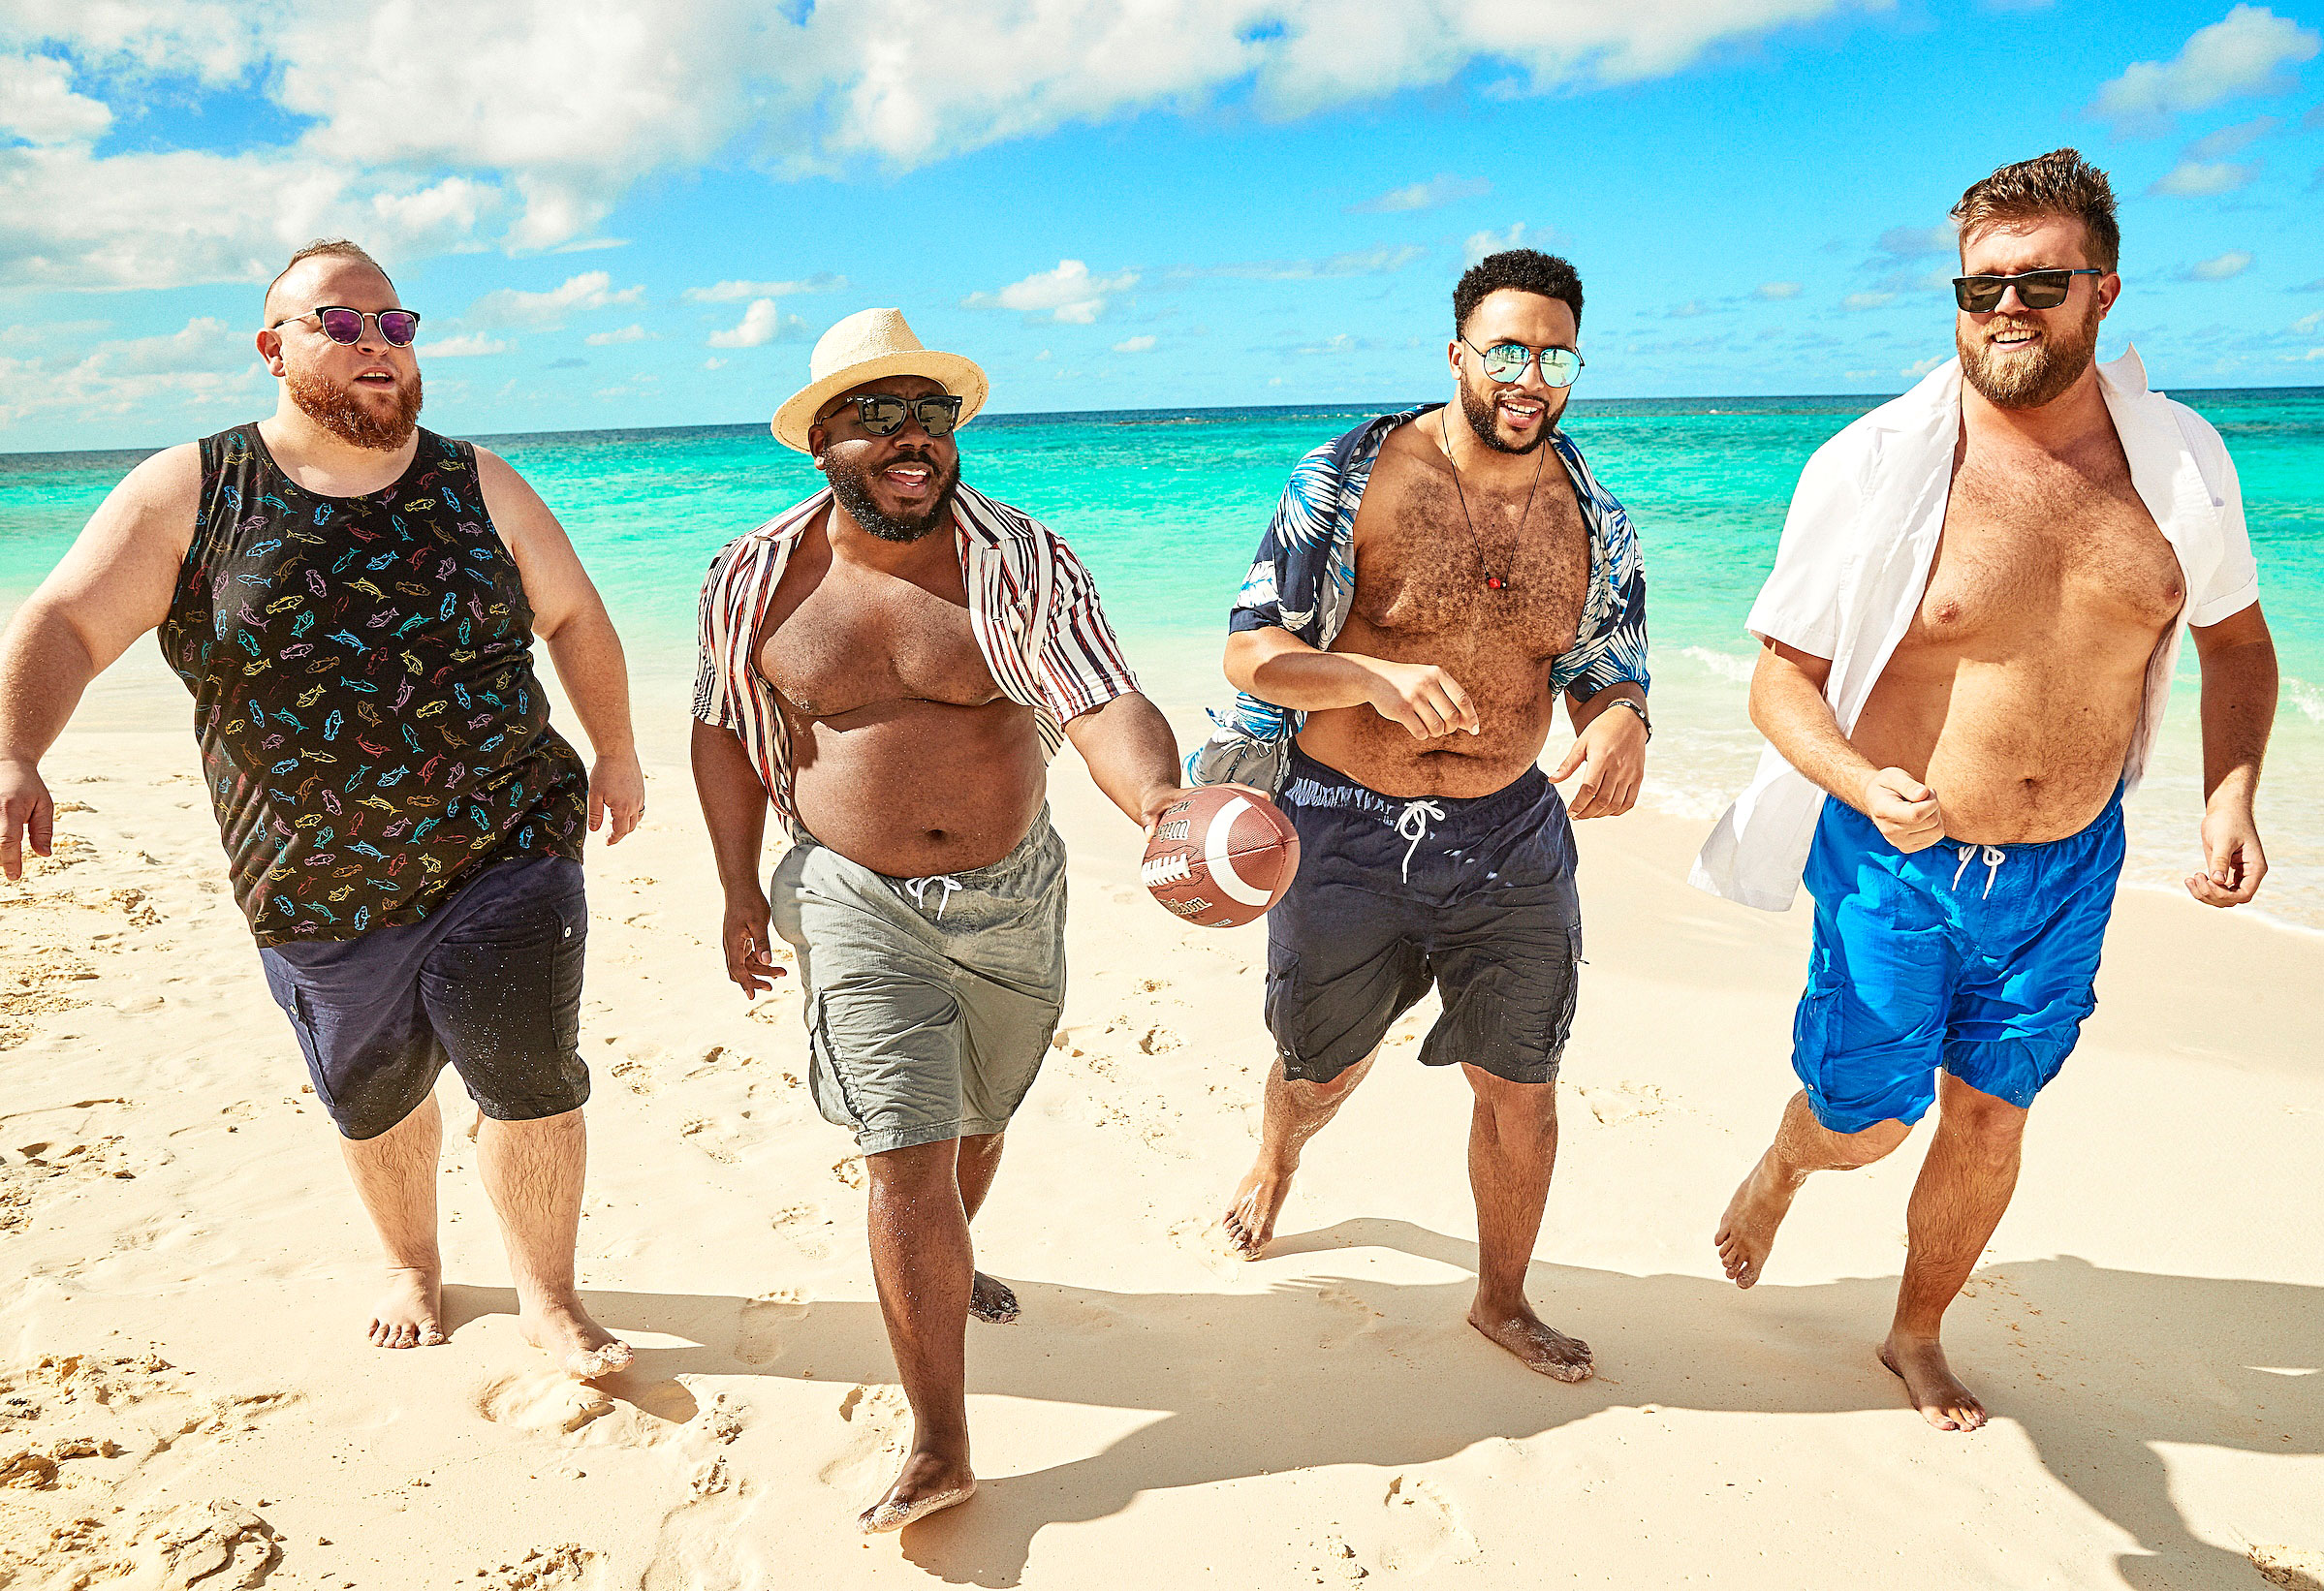 Ashley Graham Sherri Shepherd Lead Body-Positive Swim Campaign - Bruce Sturgell, Kelvin Davis, Najee Fox and Zach Miko (from left) enjoy the sand in beach looks from big and tall brand KingSize.